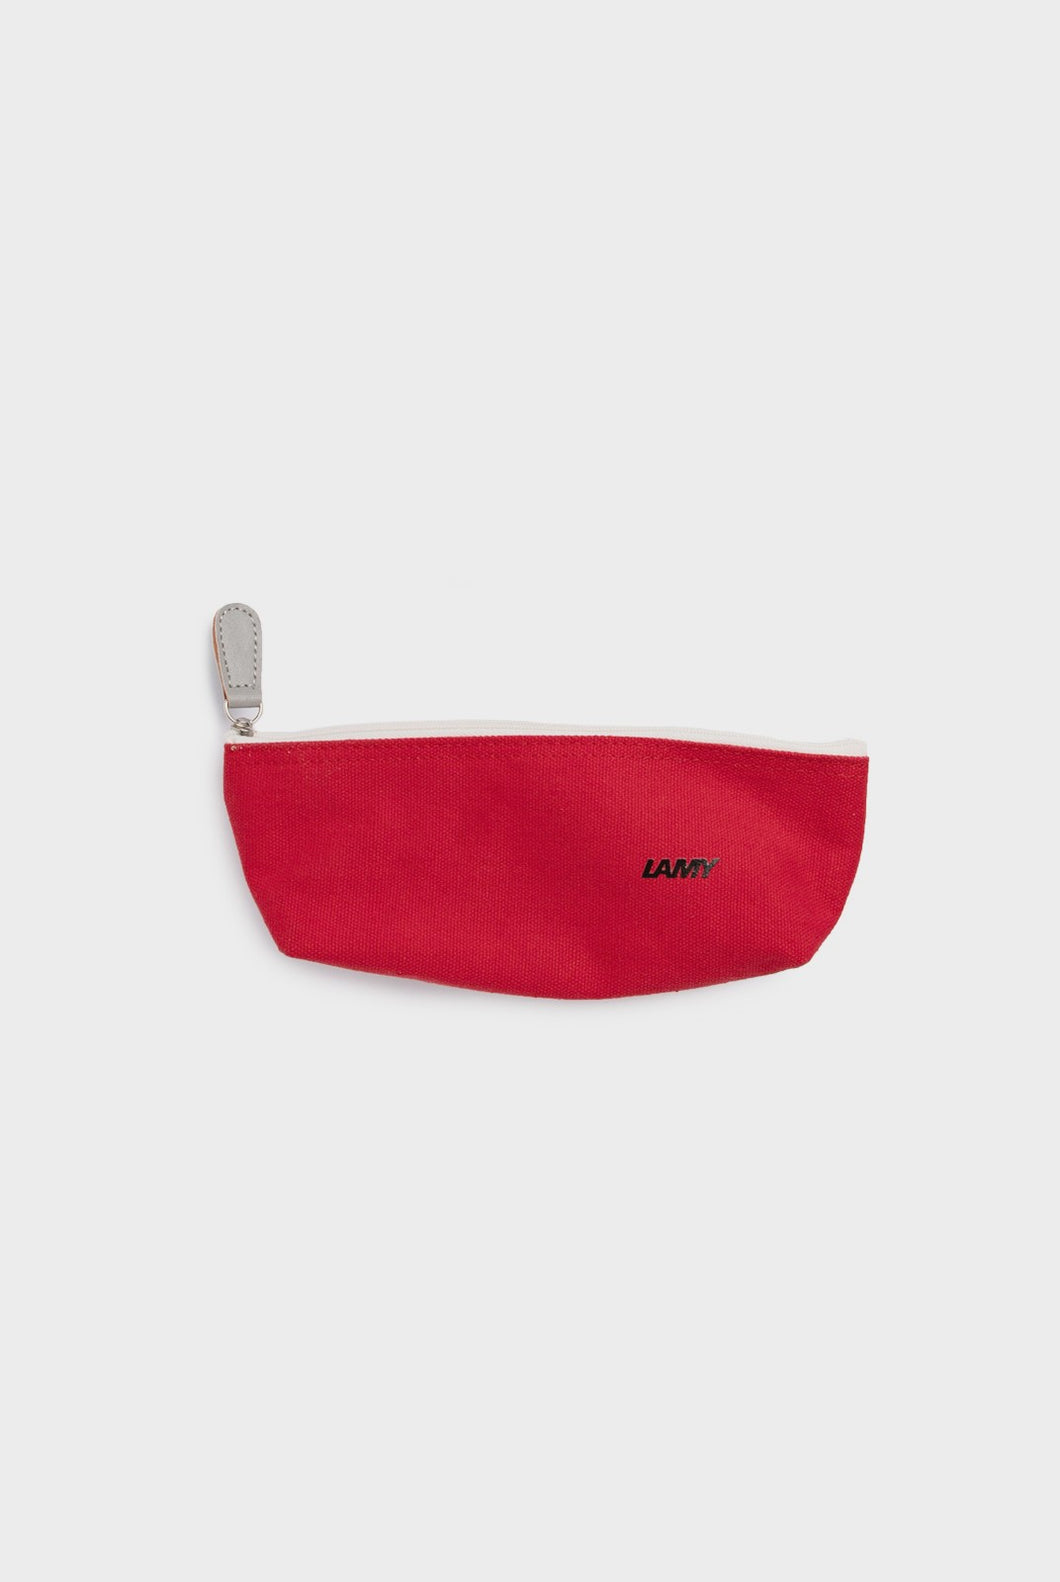 LAMY - Pencil Case - Red